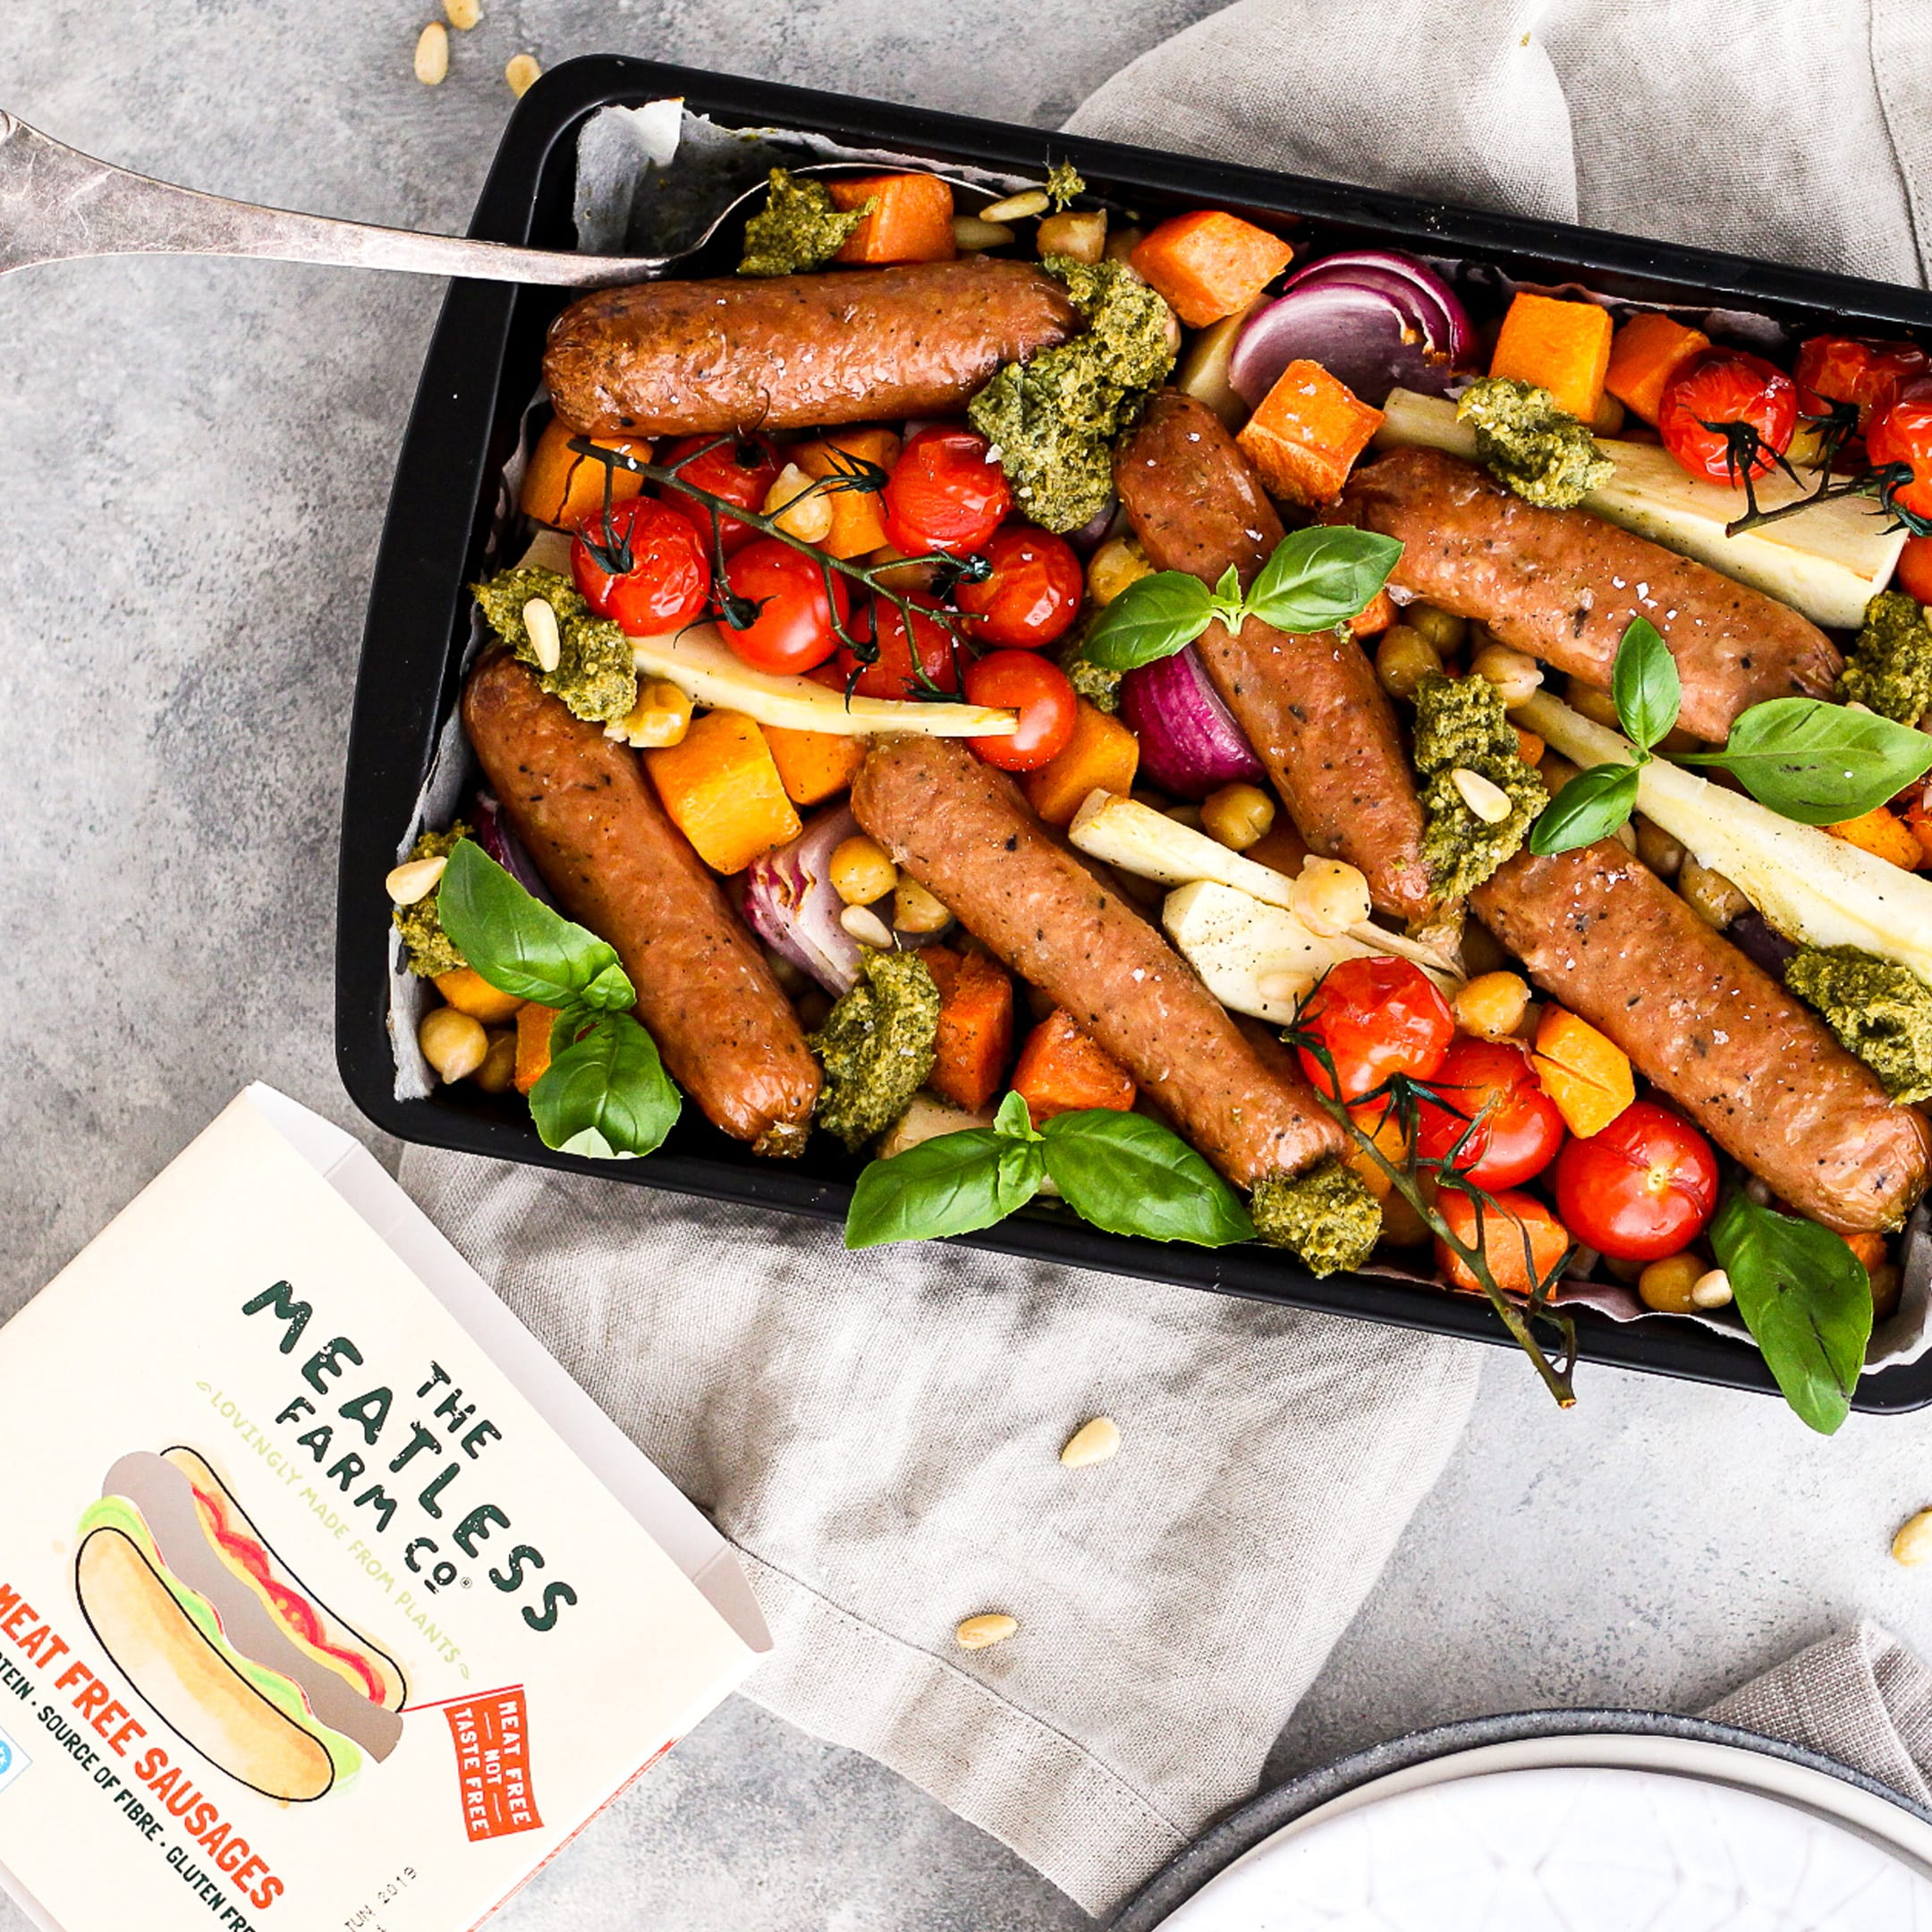 Enjoy this simple summer sharing dish of pesto, sausages and tray baked vegetables